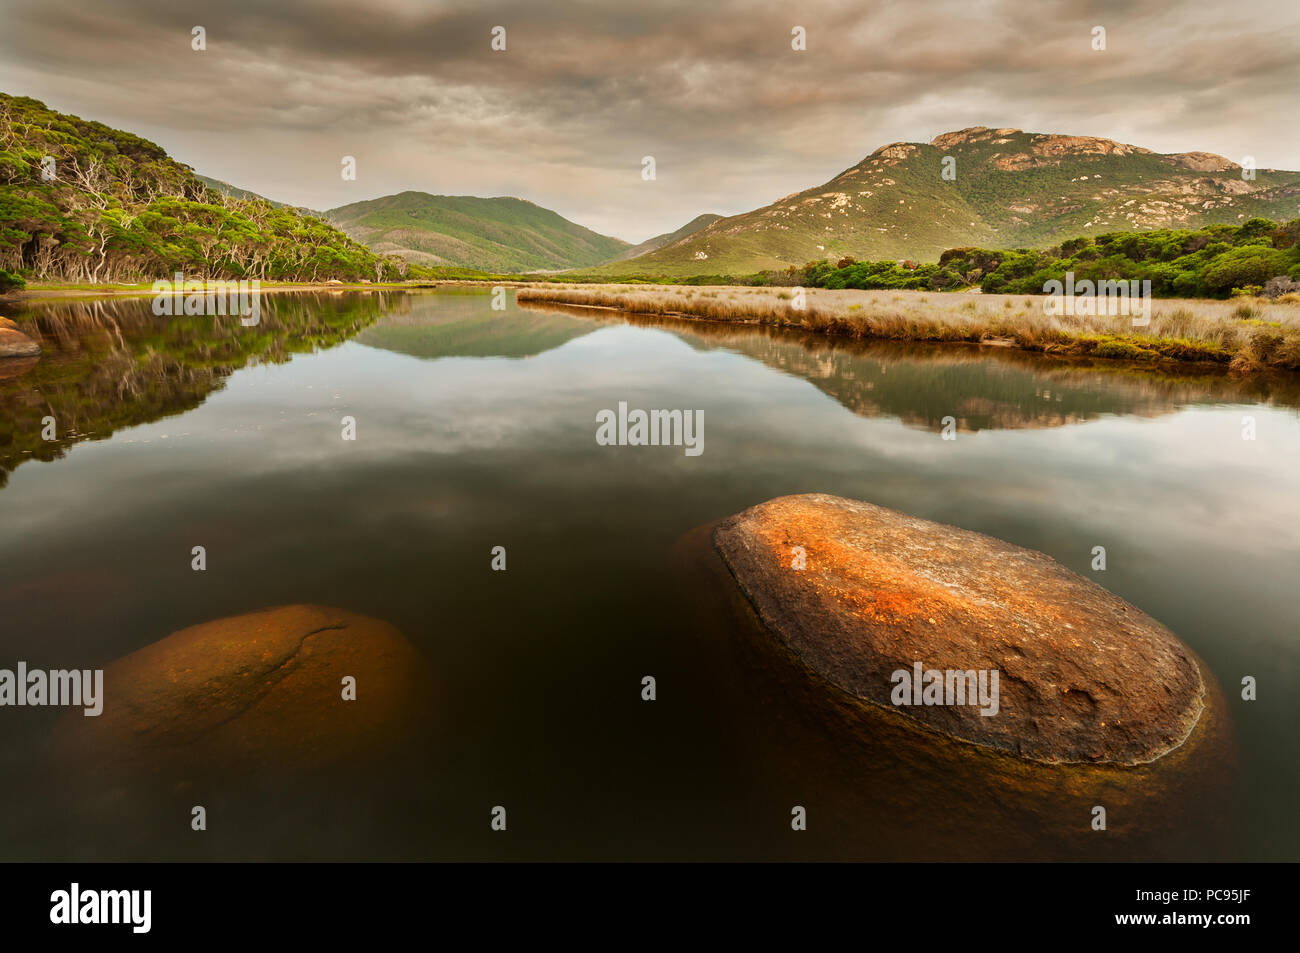 Colourful lichen-covered rocks at Tidal River in Wilsons Promontory National Park. - Stock Image